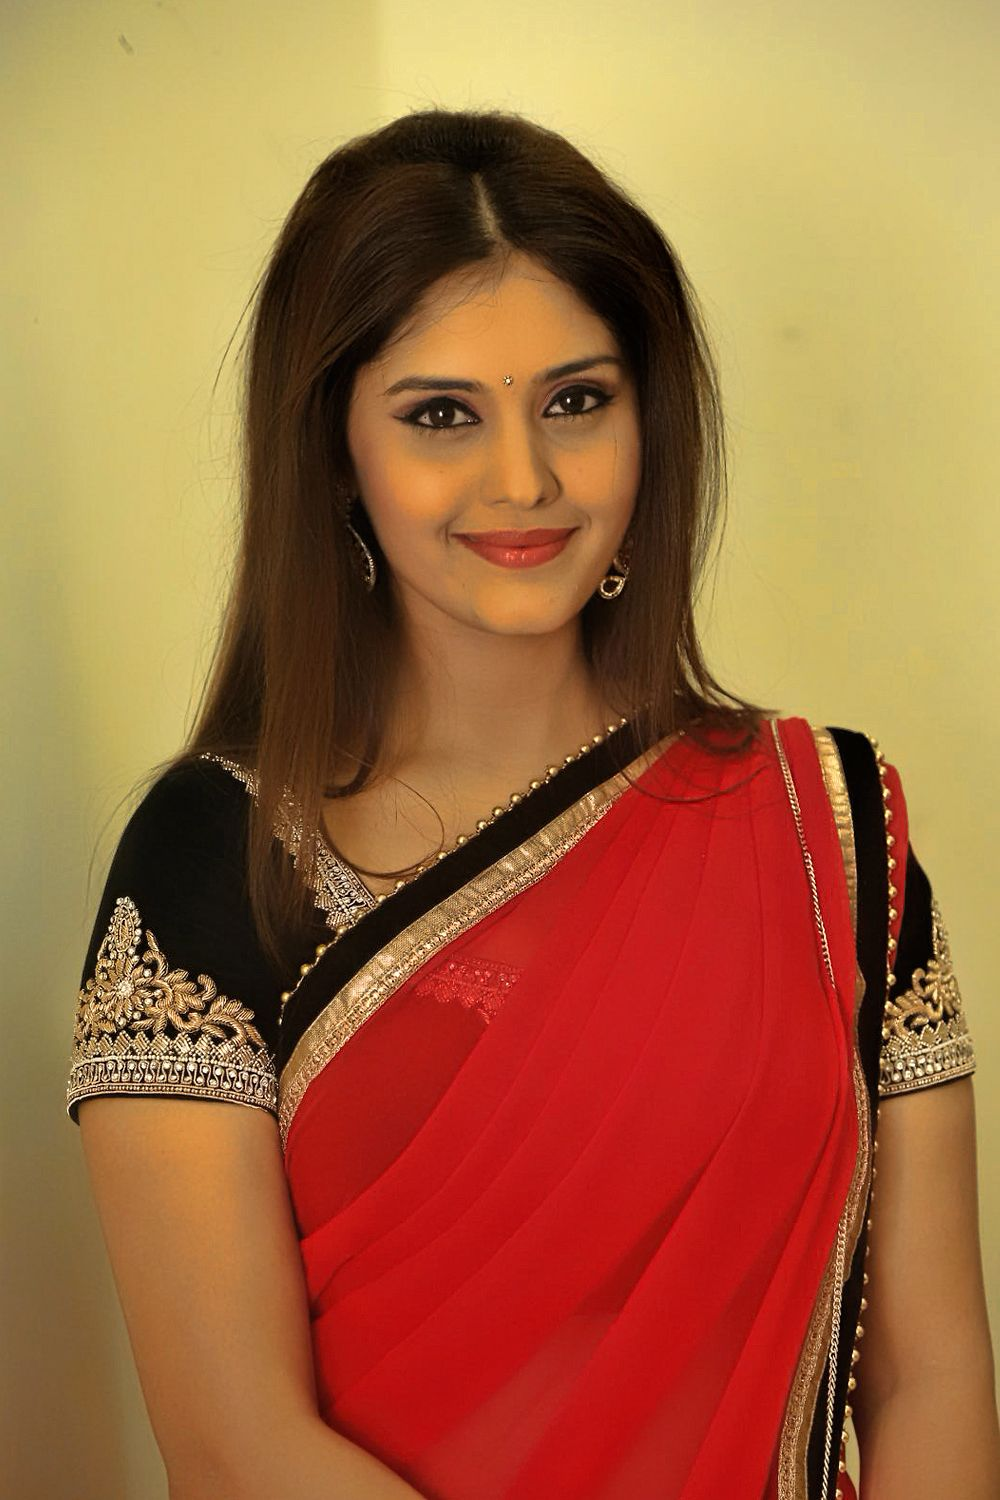 surabhi hd wallpapers ☆ desipixer ☆ | sruabhi | pinterest | hd